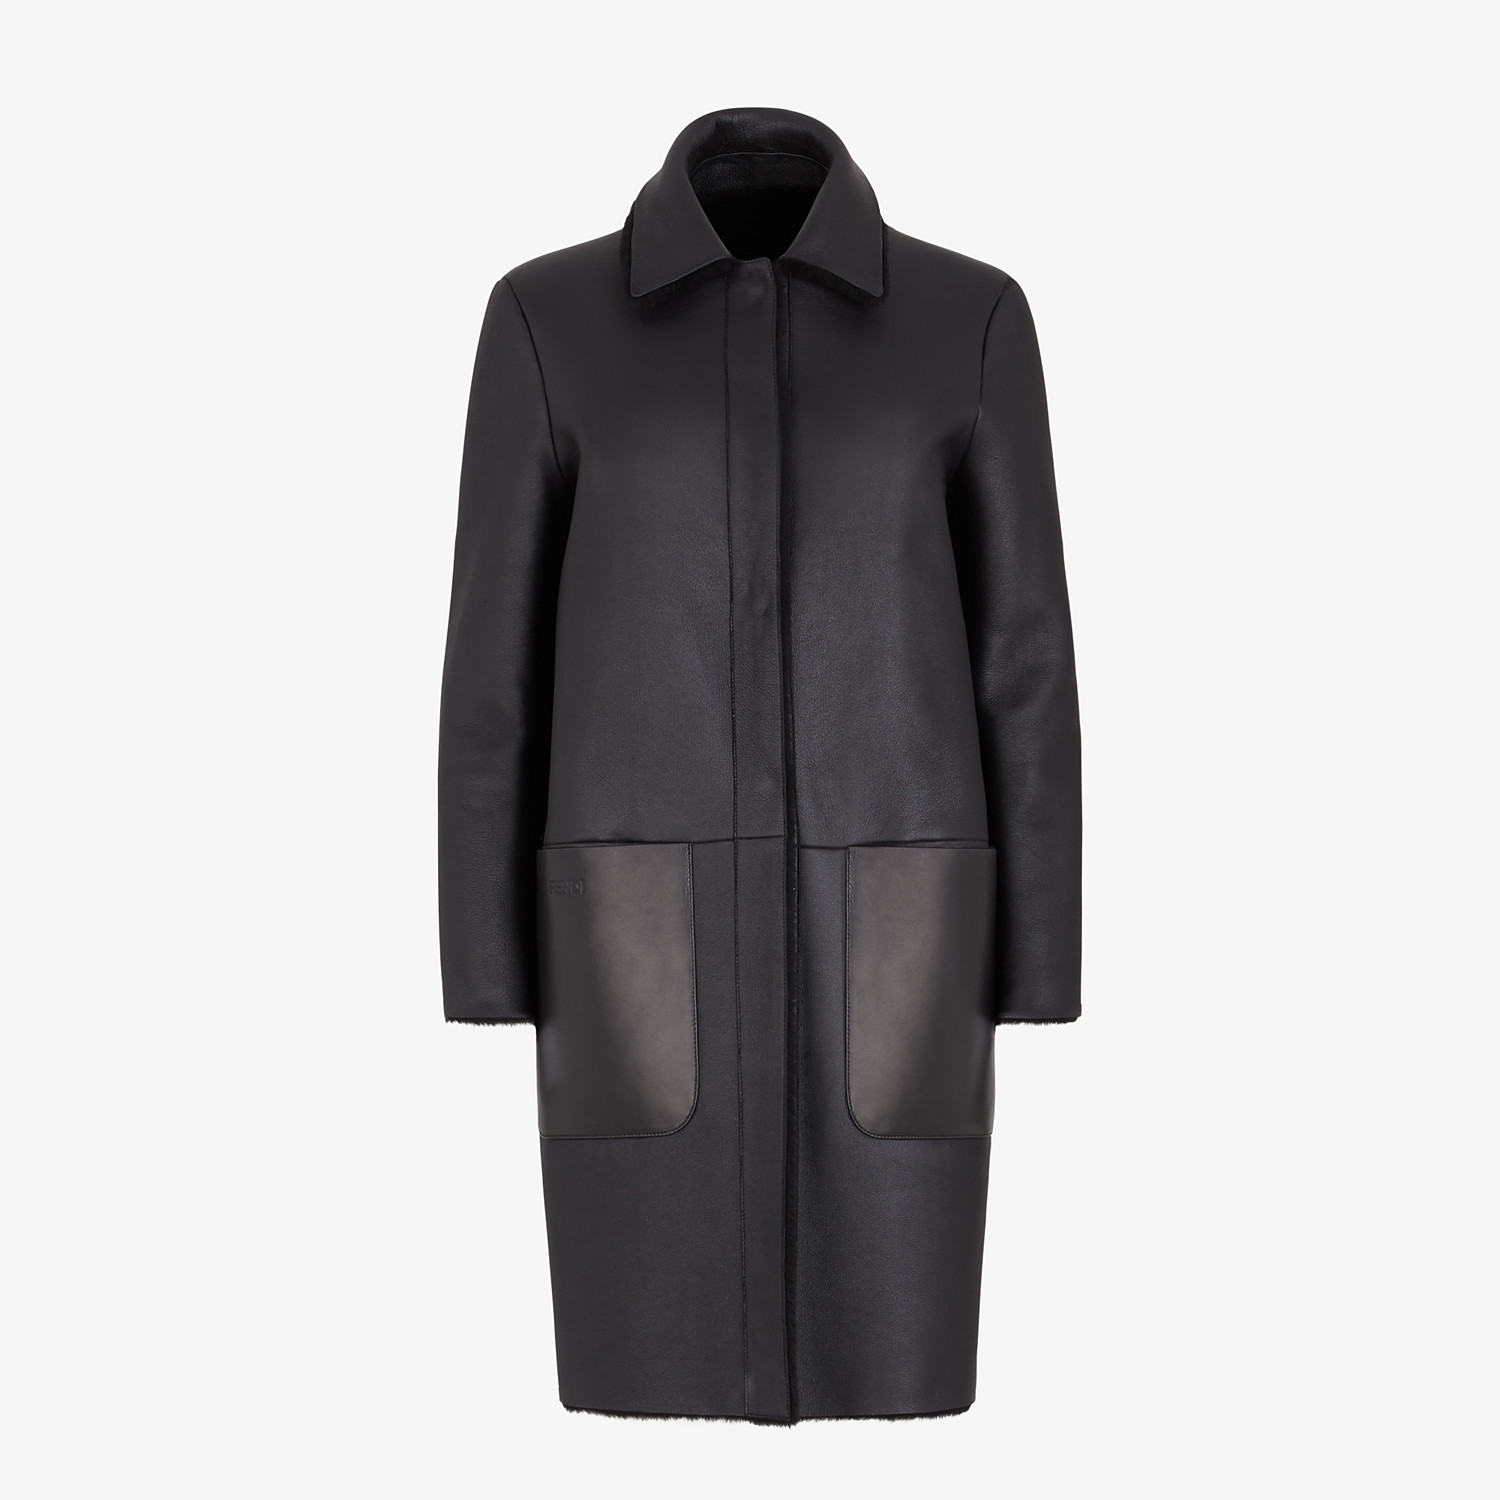 FENDI COAT - Black shearling coat - view 4 detail